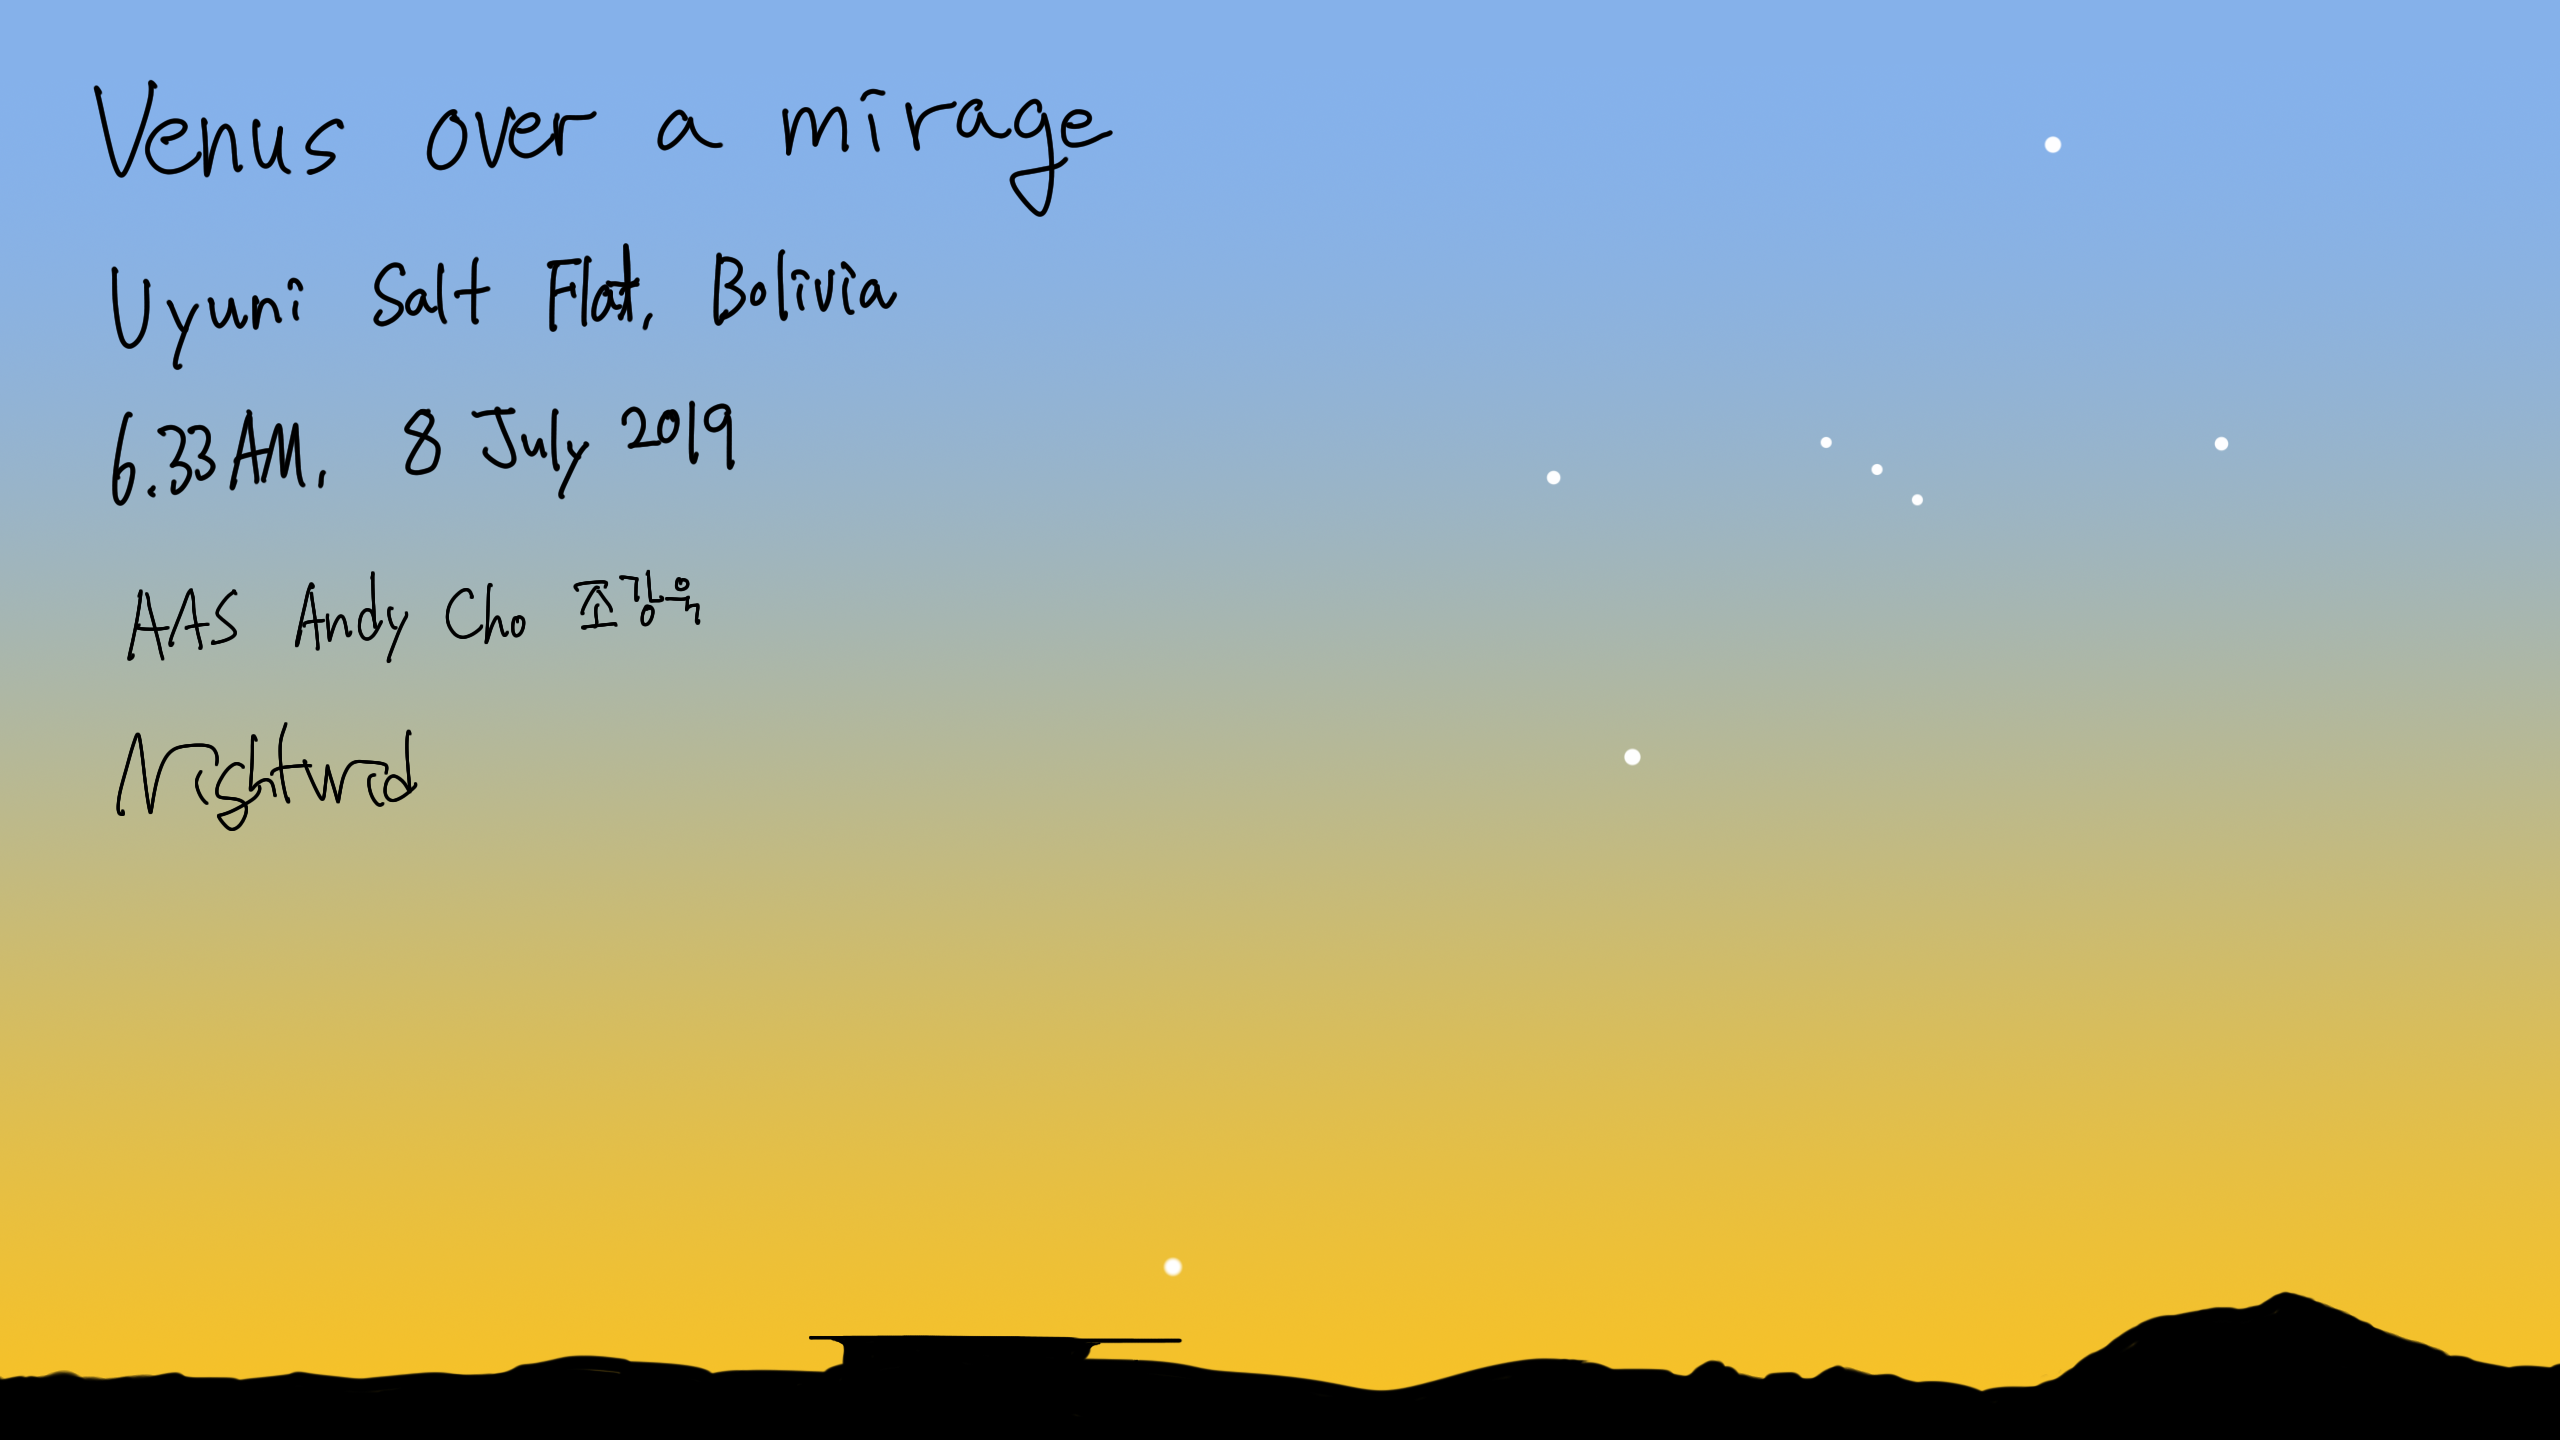 Venus over a mirage 8 July 2019.png